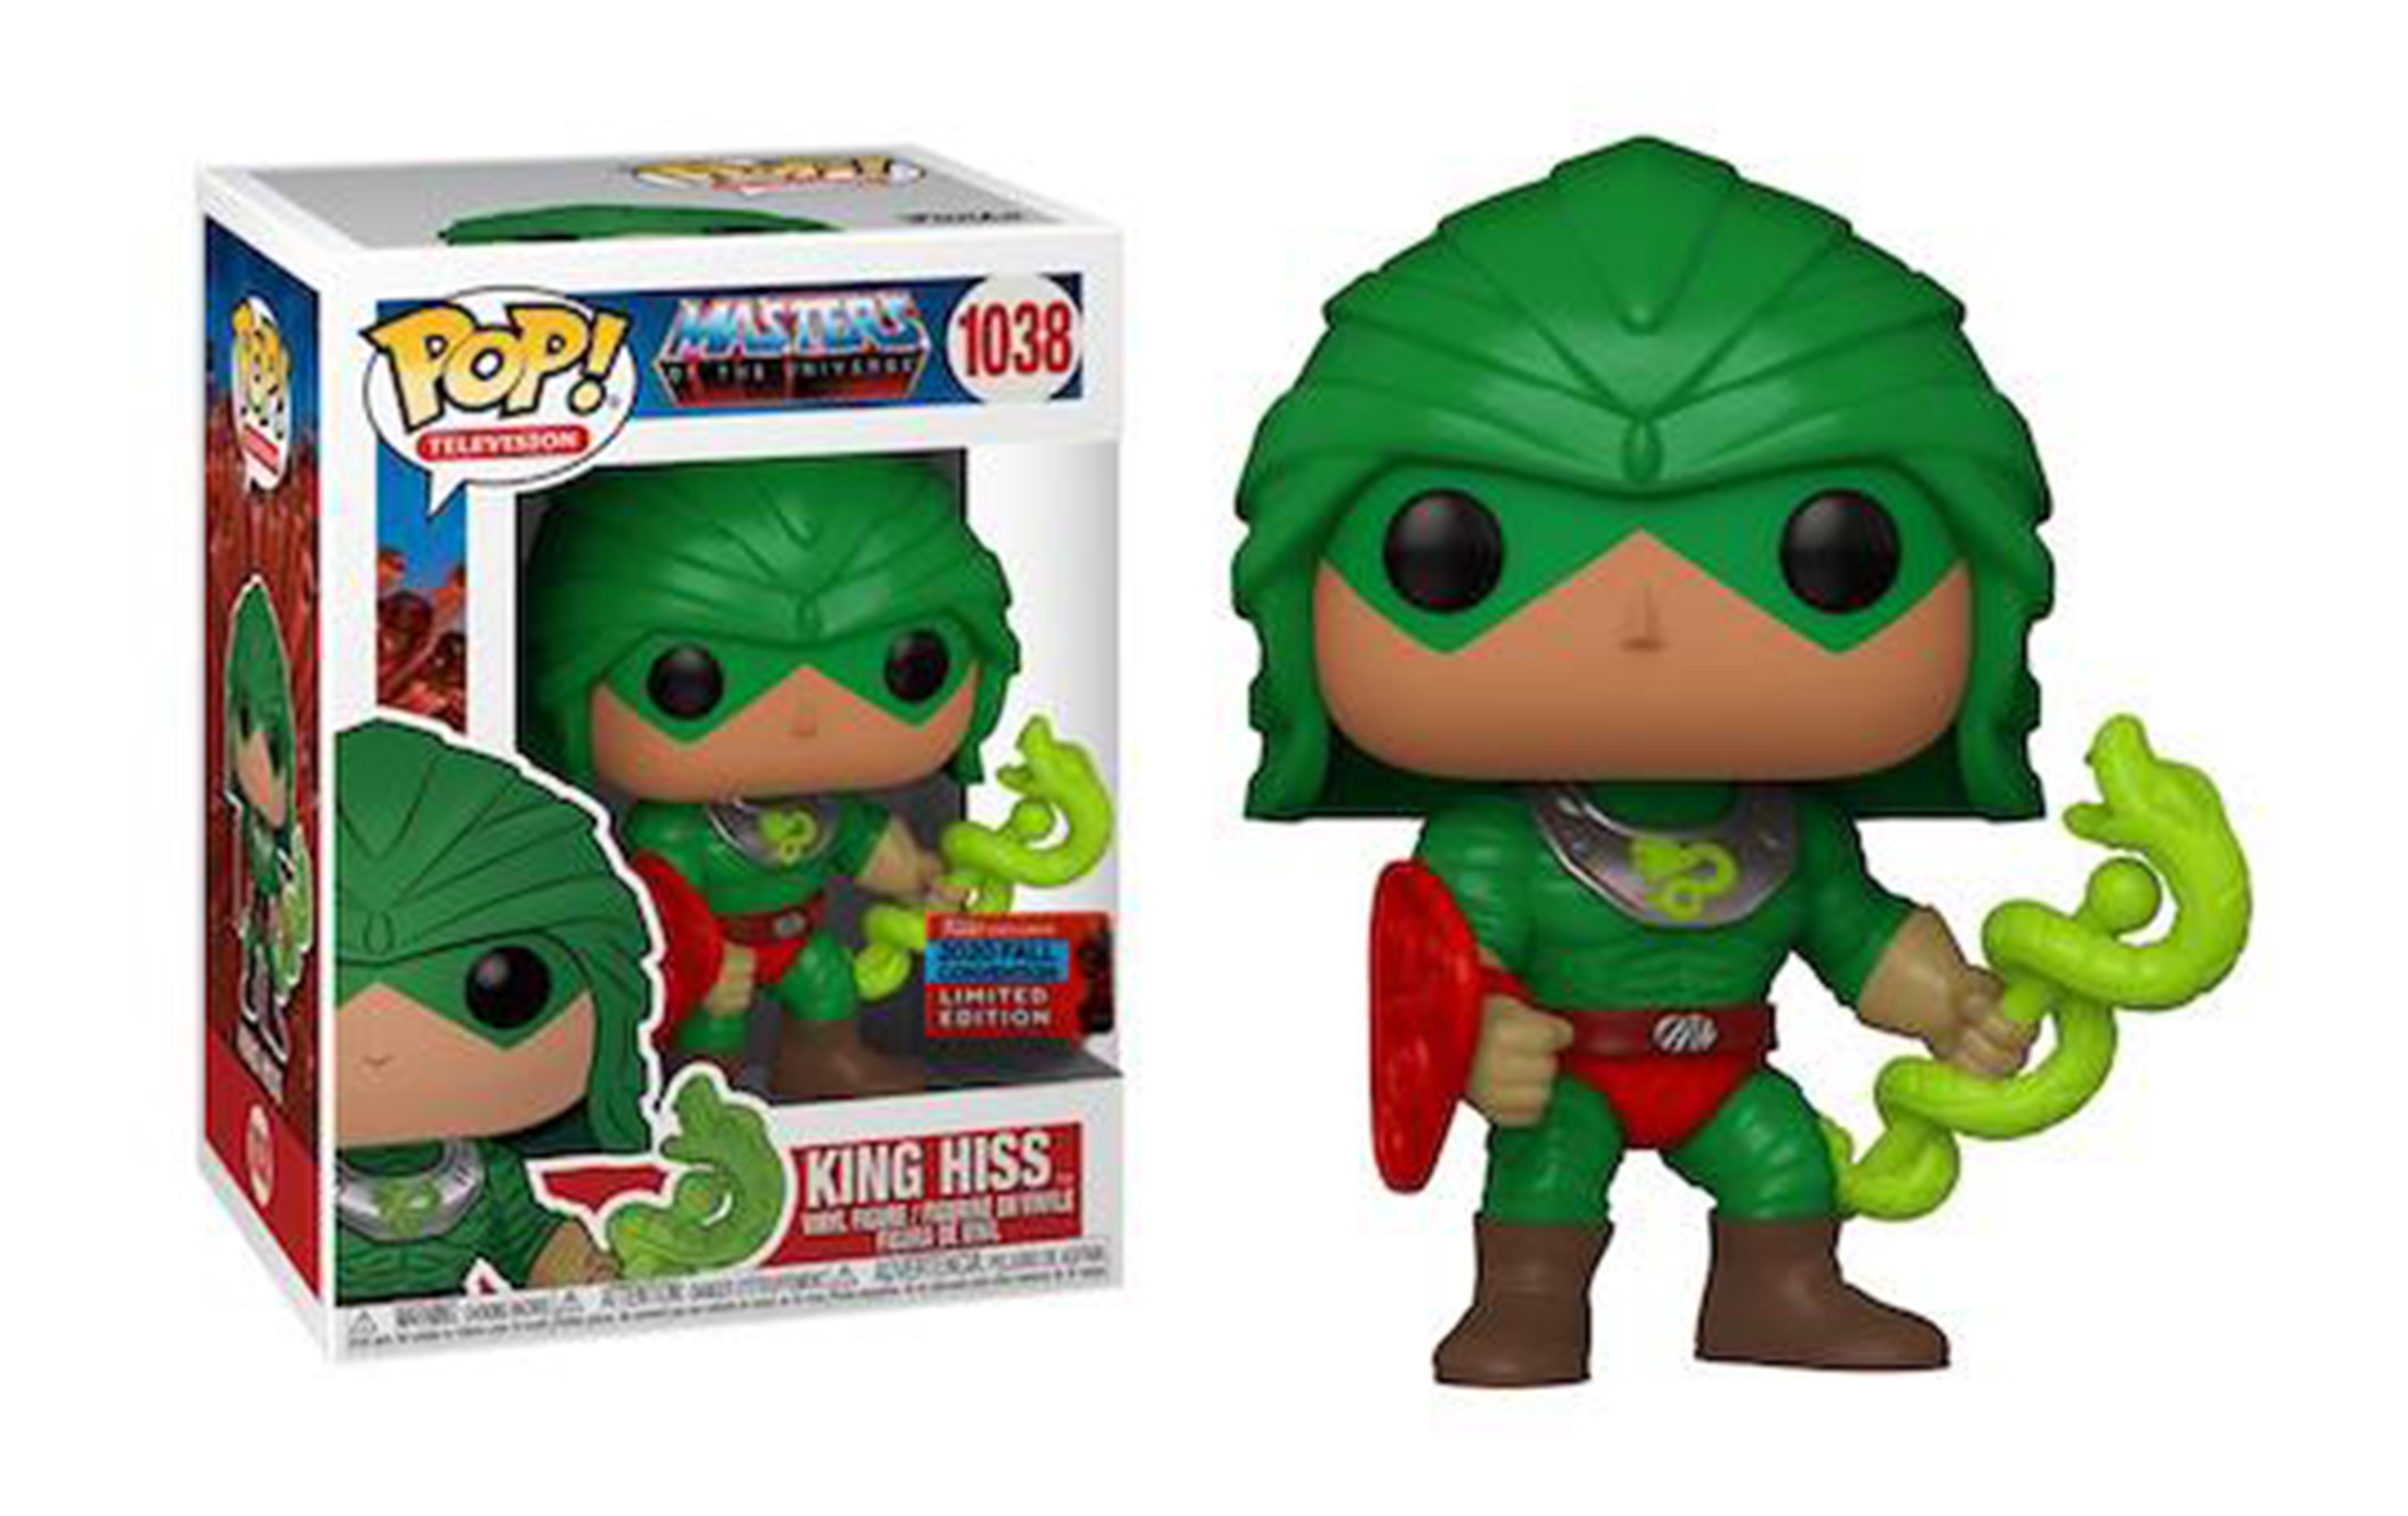 Masters of the Universe King Hiss Fall Convention 2020 1038 Funko POP Figure